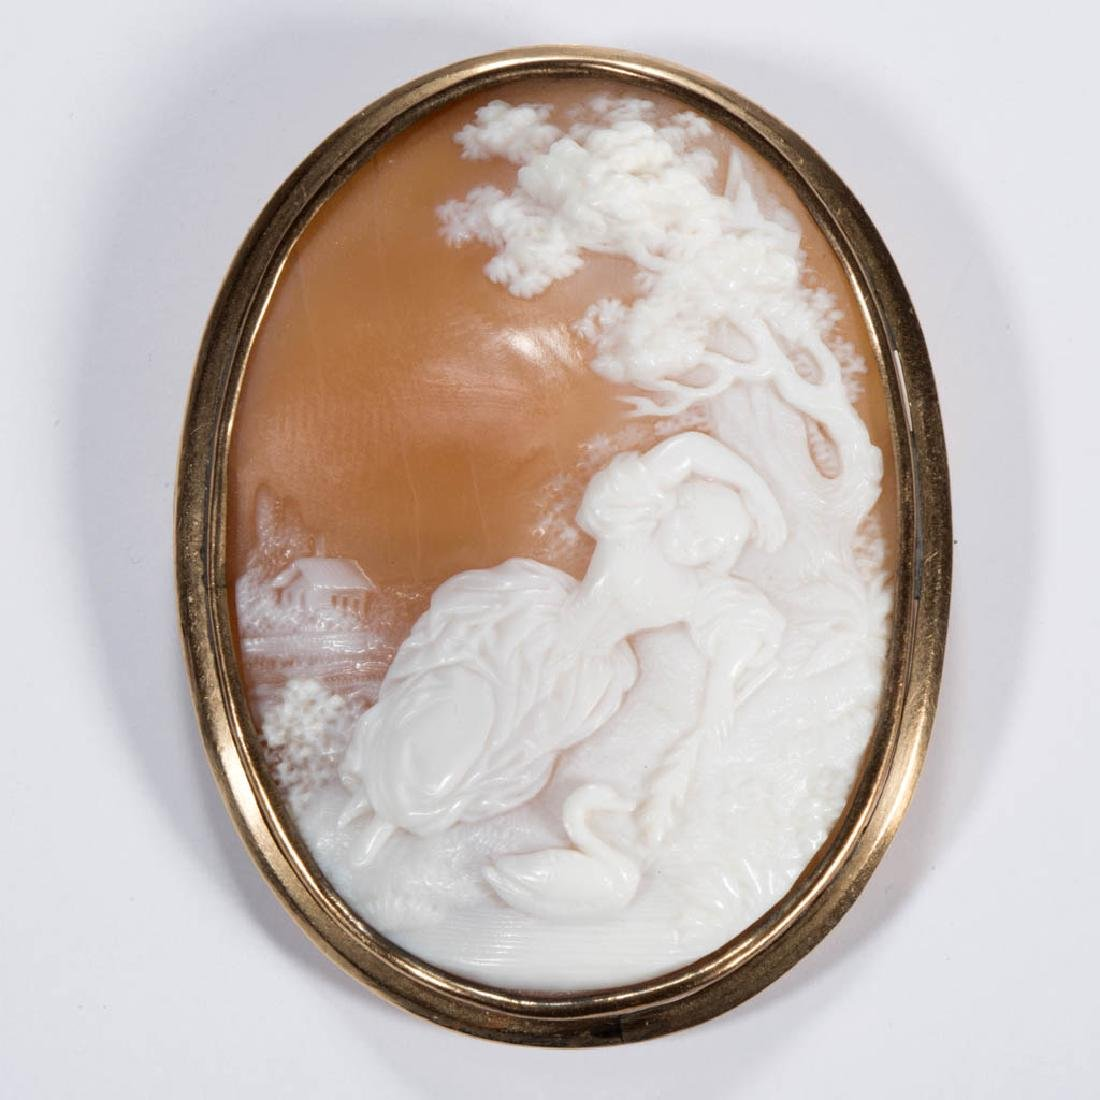 ANTIQUE 10K GOLD AND CARVED CAMEO BROOCH